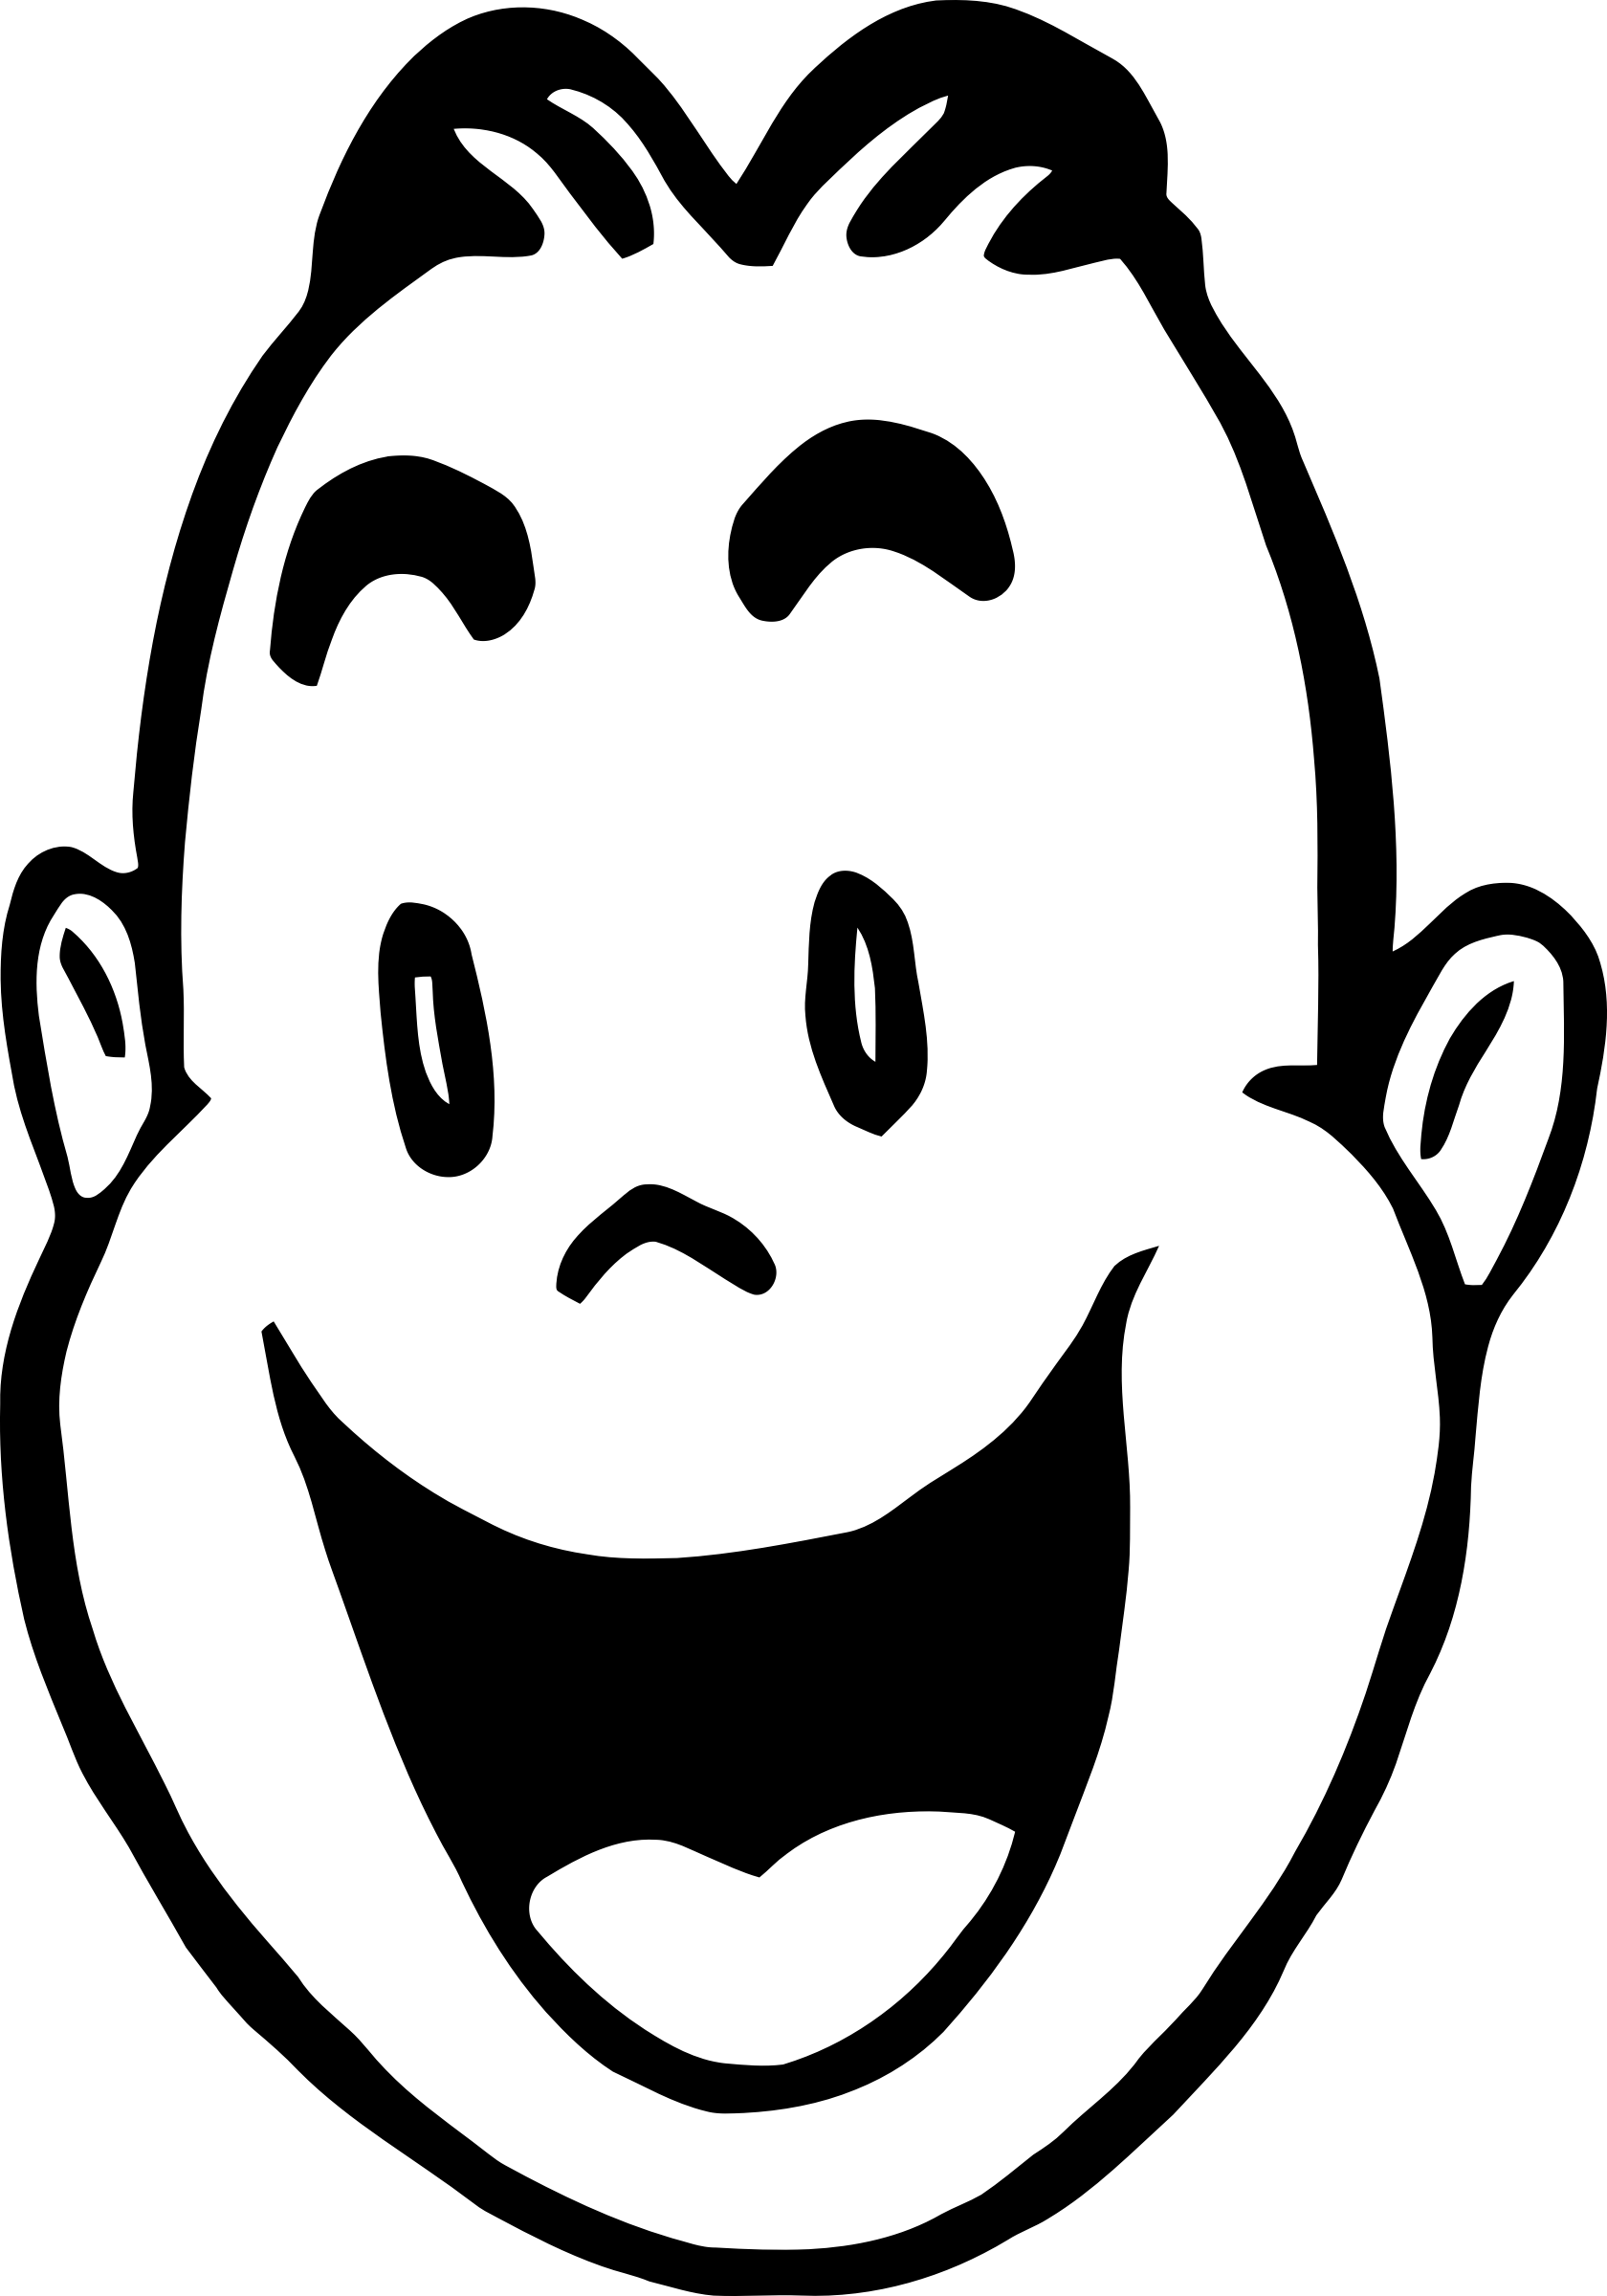 Amused man big image. Excited clipart line